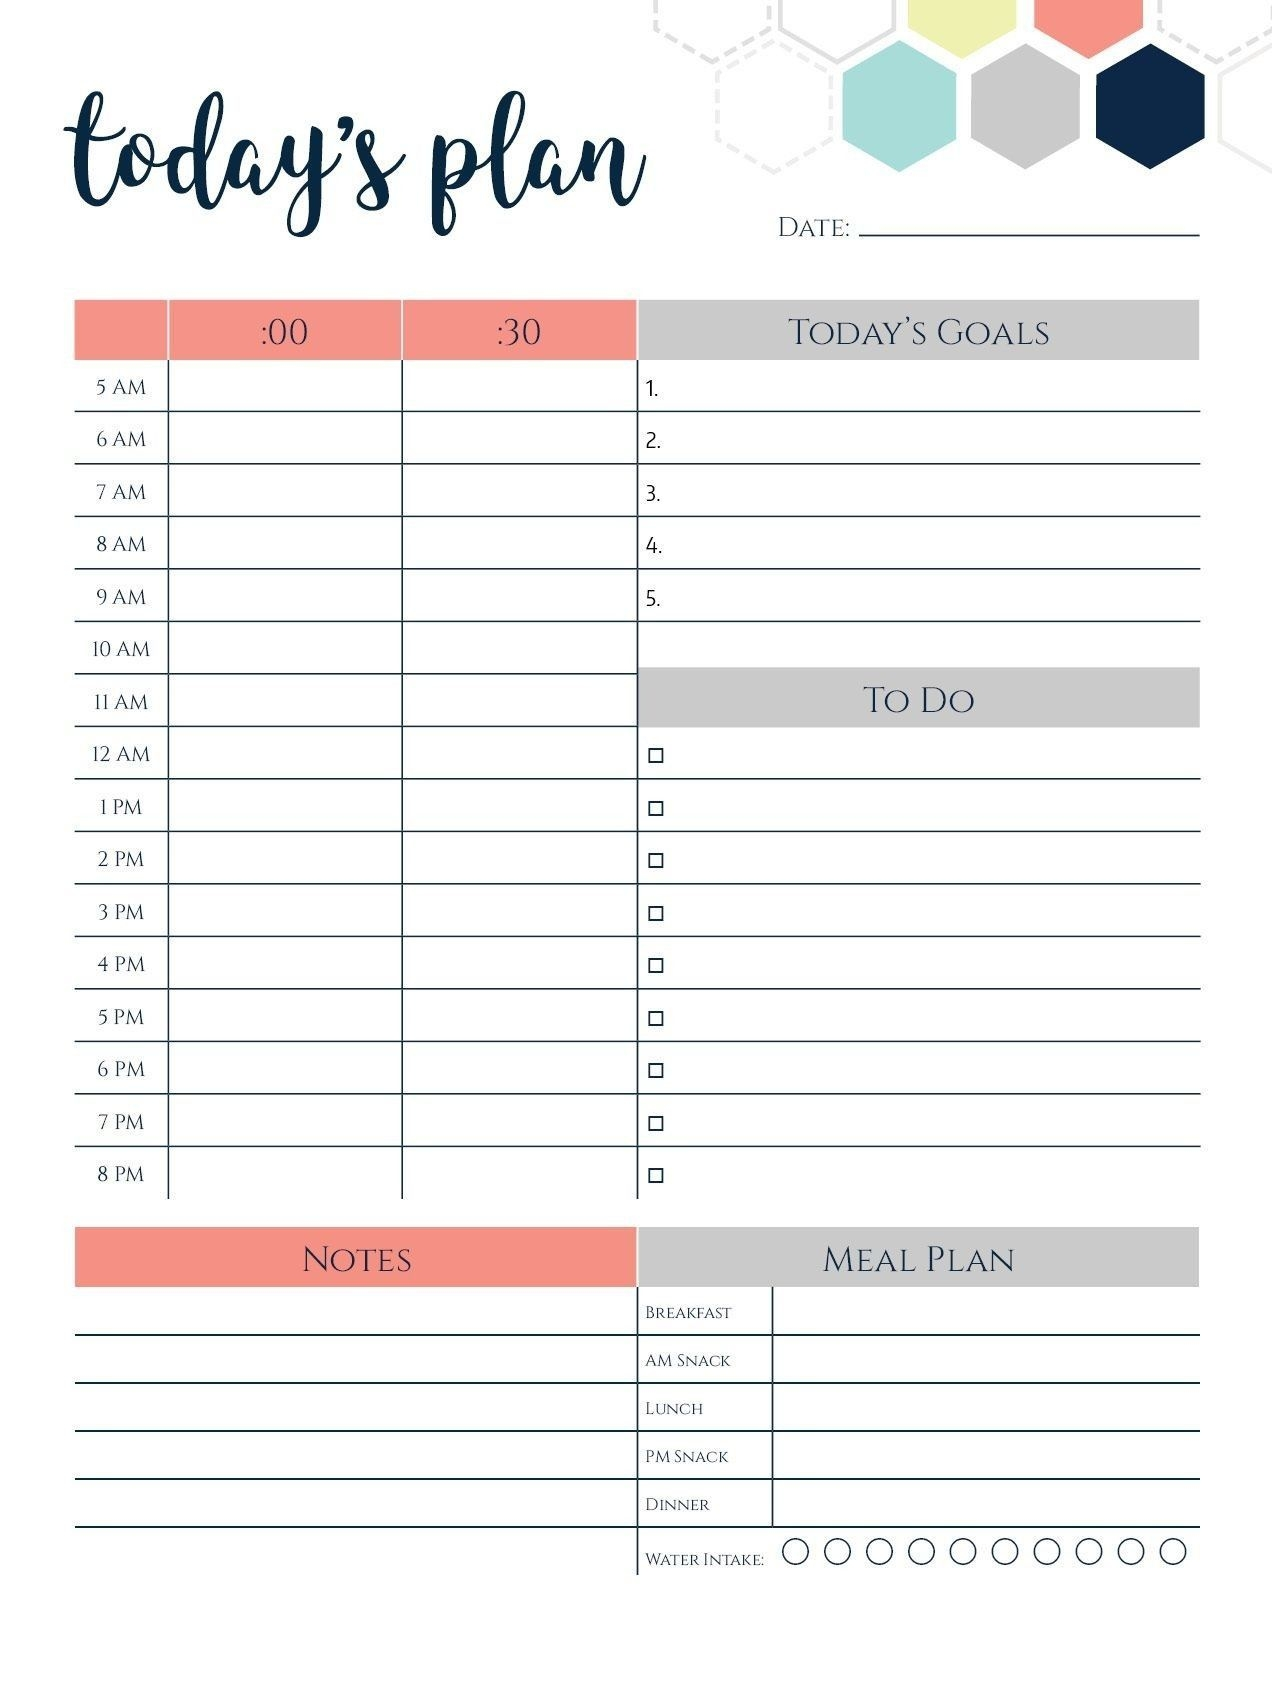 Daily Calendar Template 2018 Today's Plan | Daily Planner